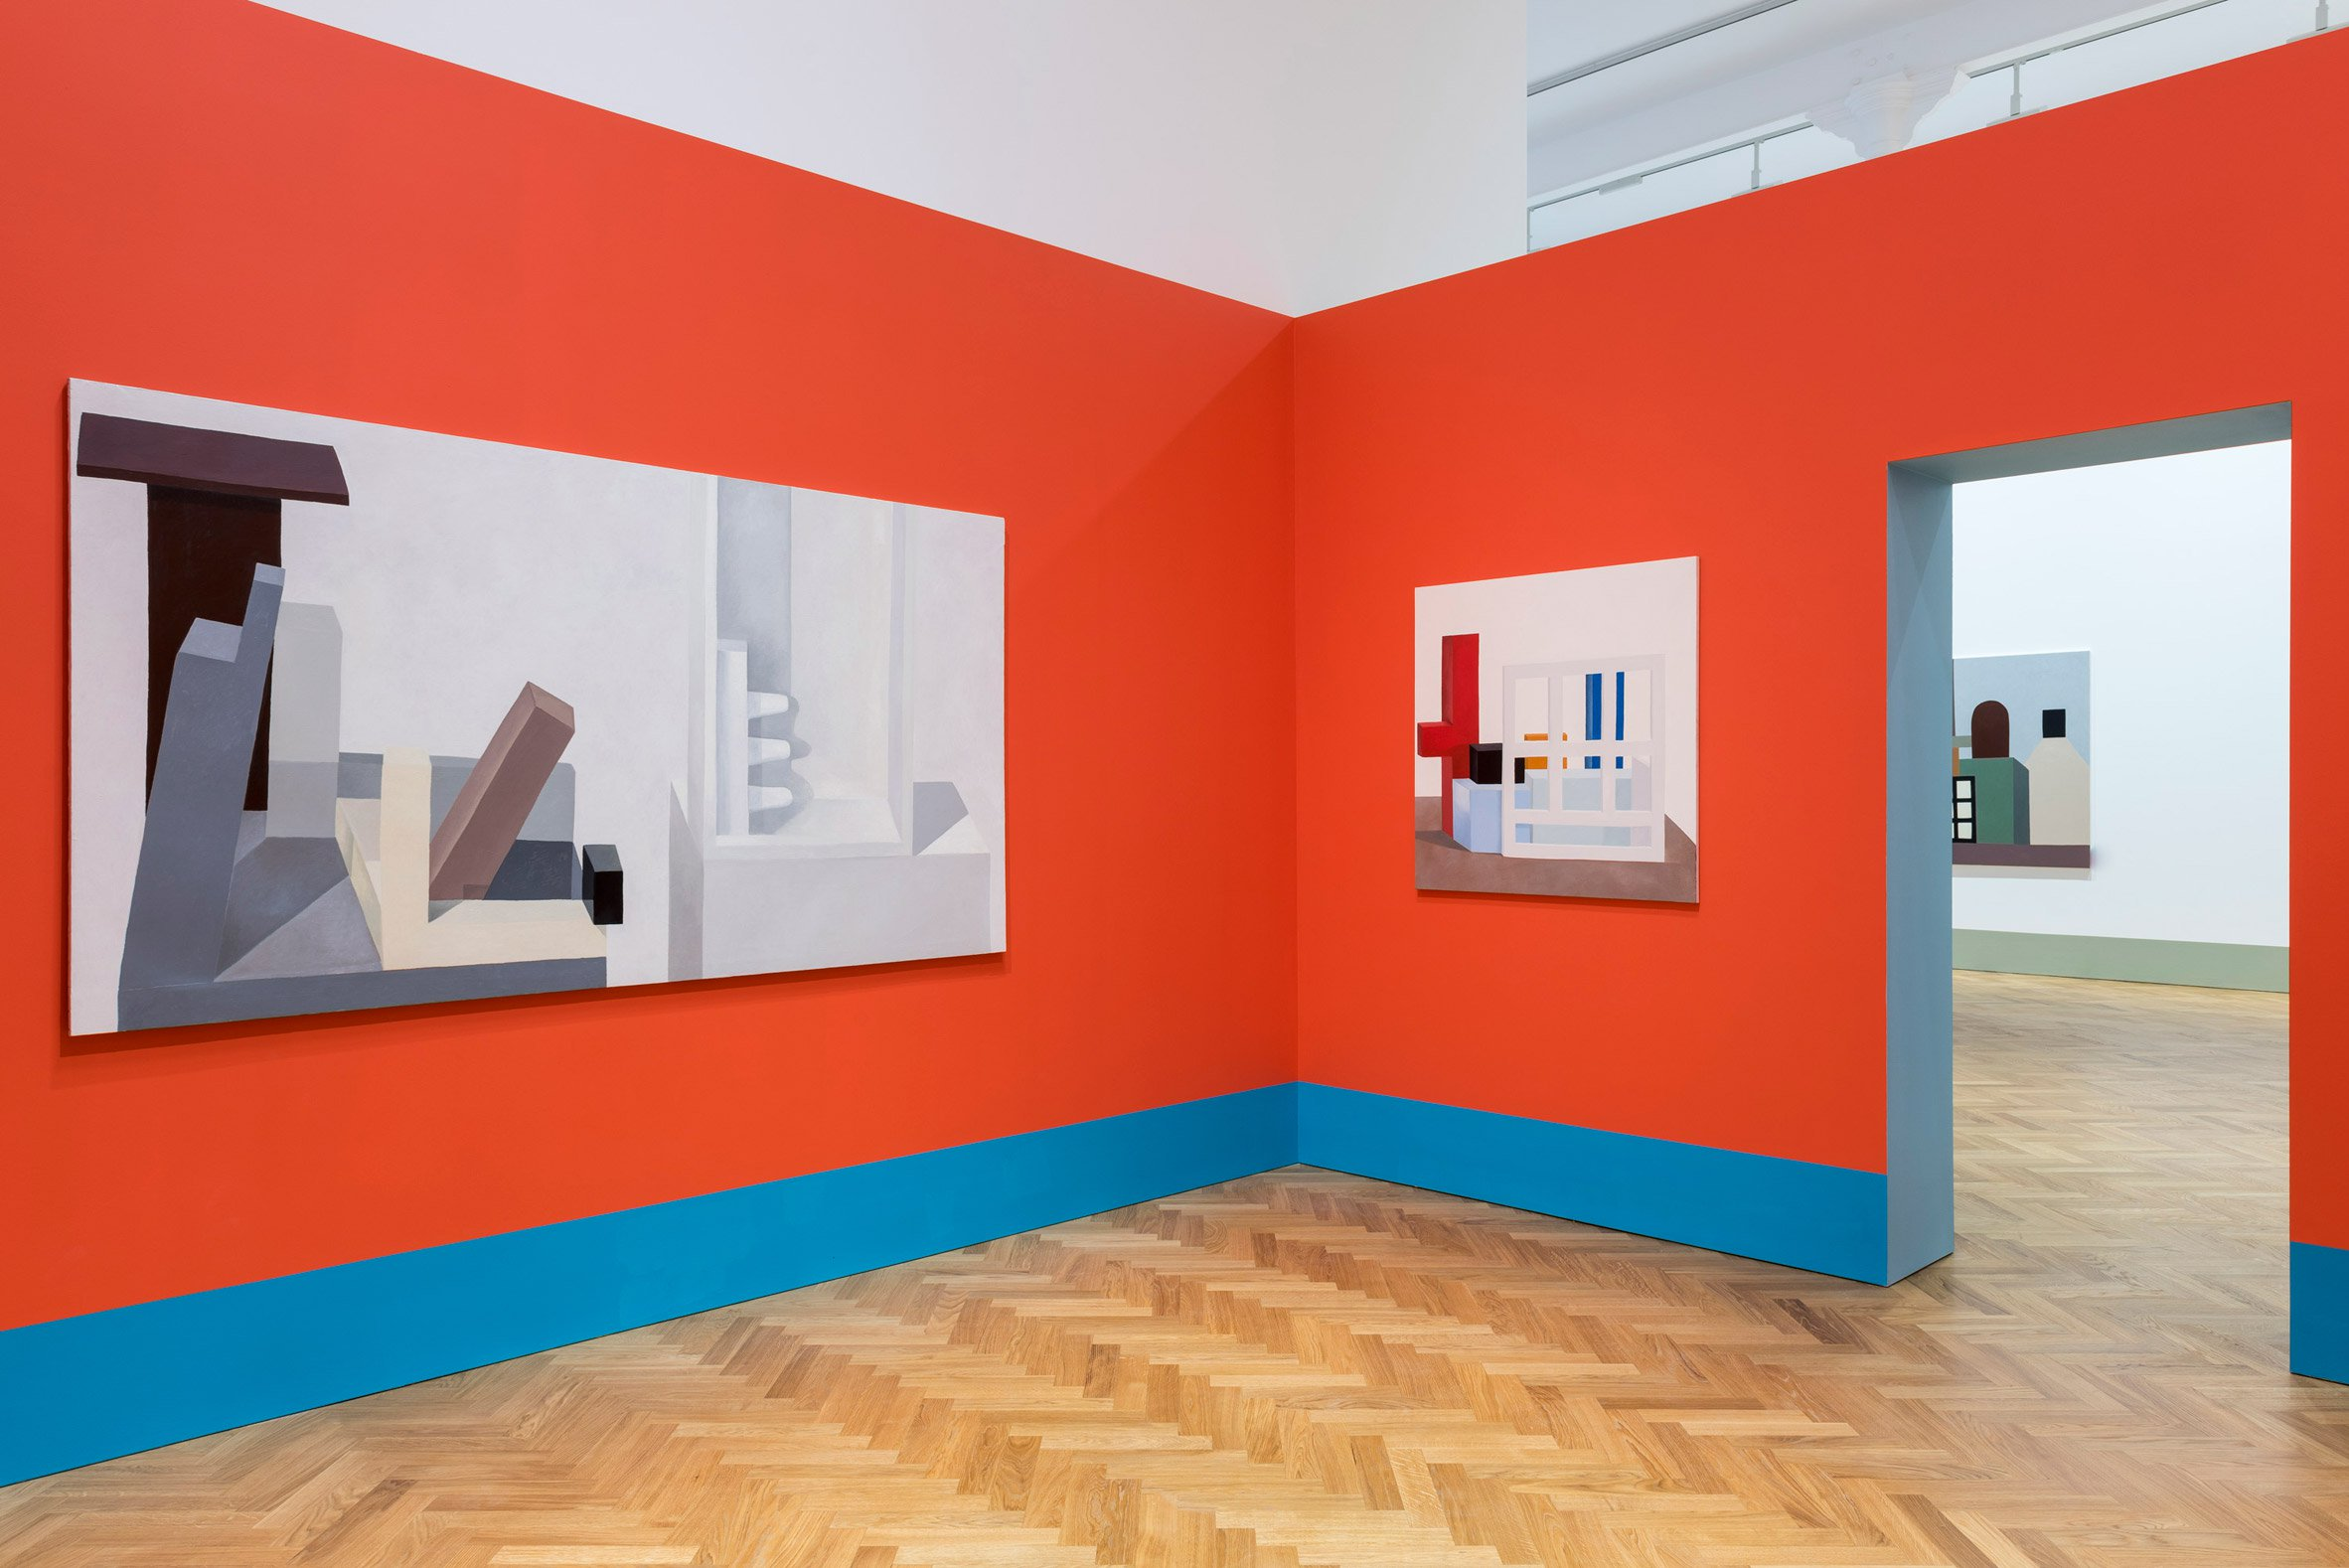 from-time-to-time-exhibition-nathalie-du-pasquier-design_dezeen_2364_col_25-1.jpg